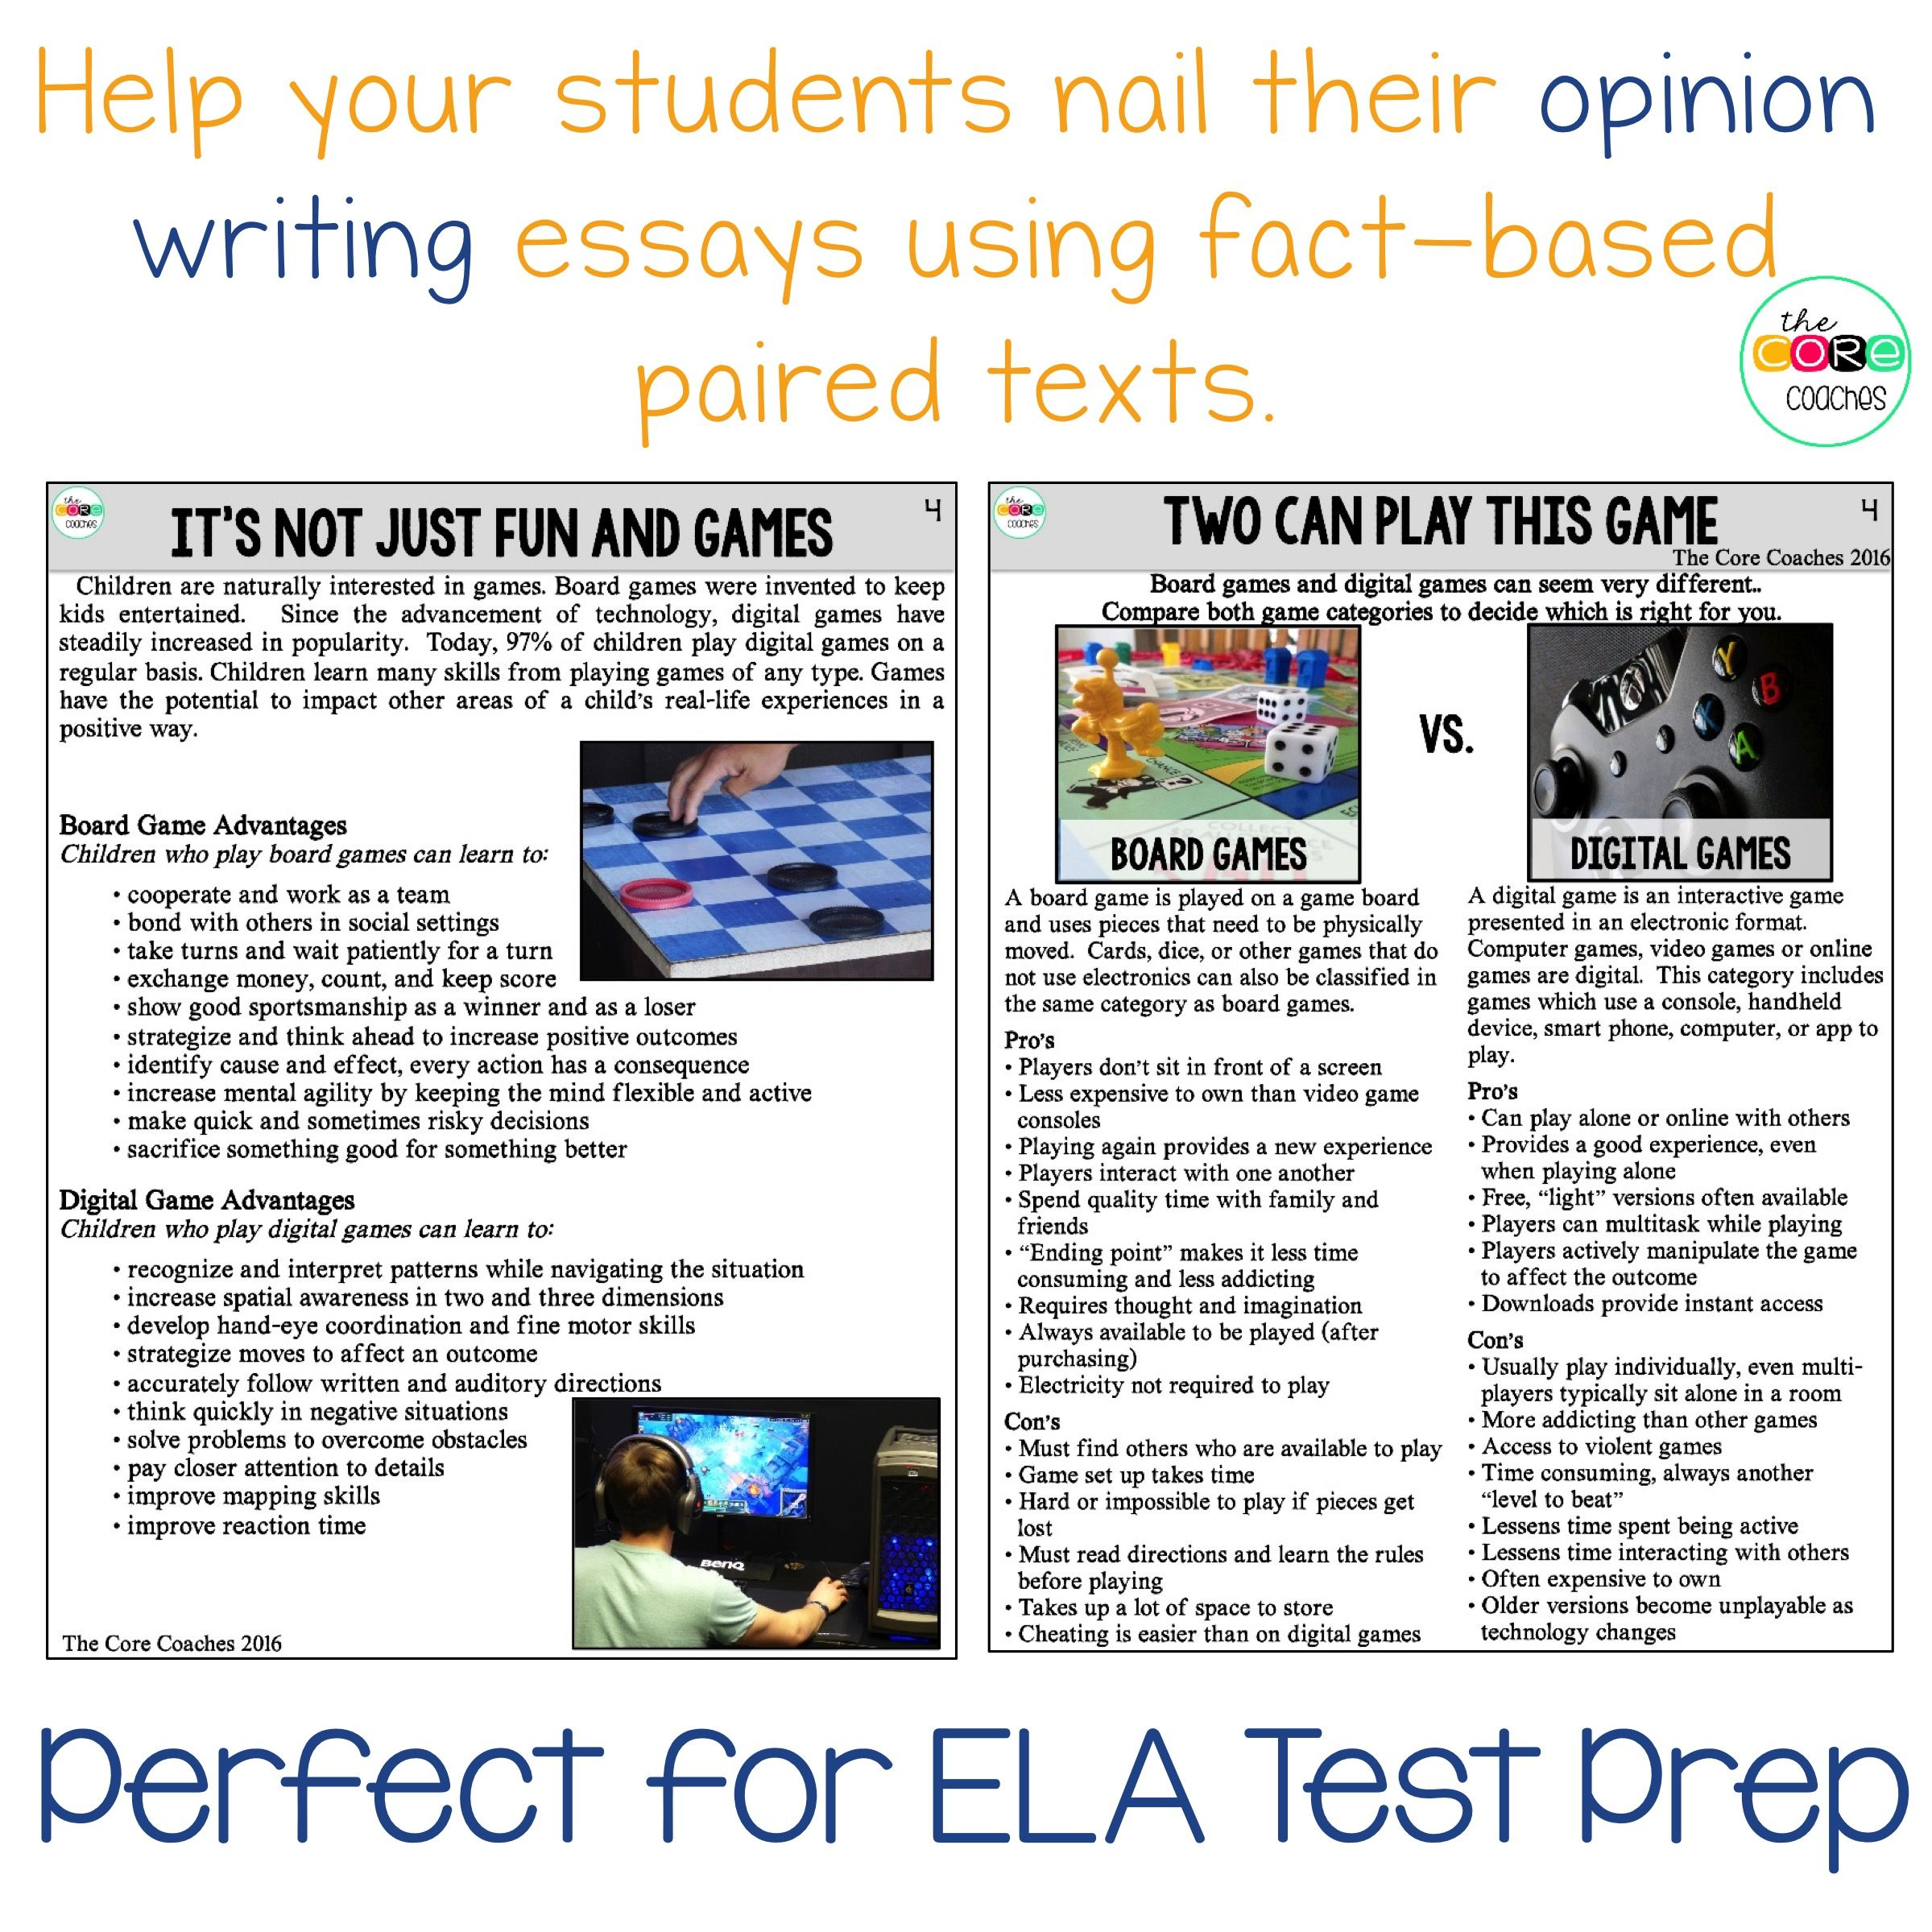 Pin By Christina M On Second Grade Writing Instruction Teaching Paired Texts Video Game Essays Best Essay Violence